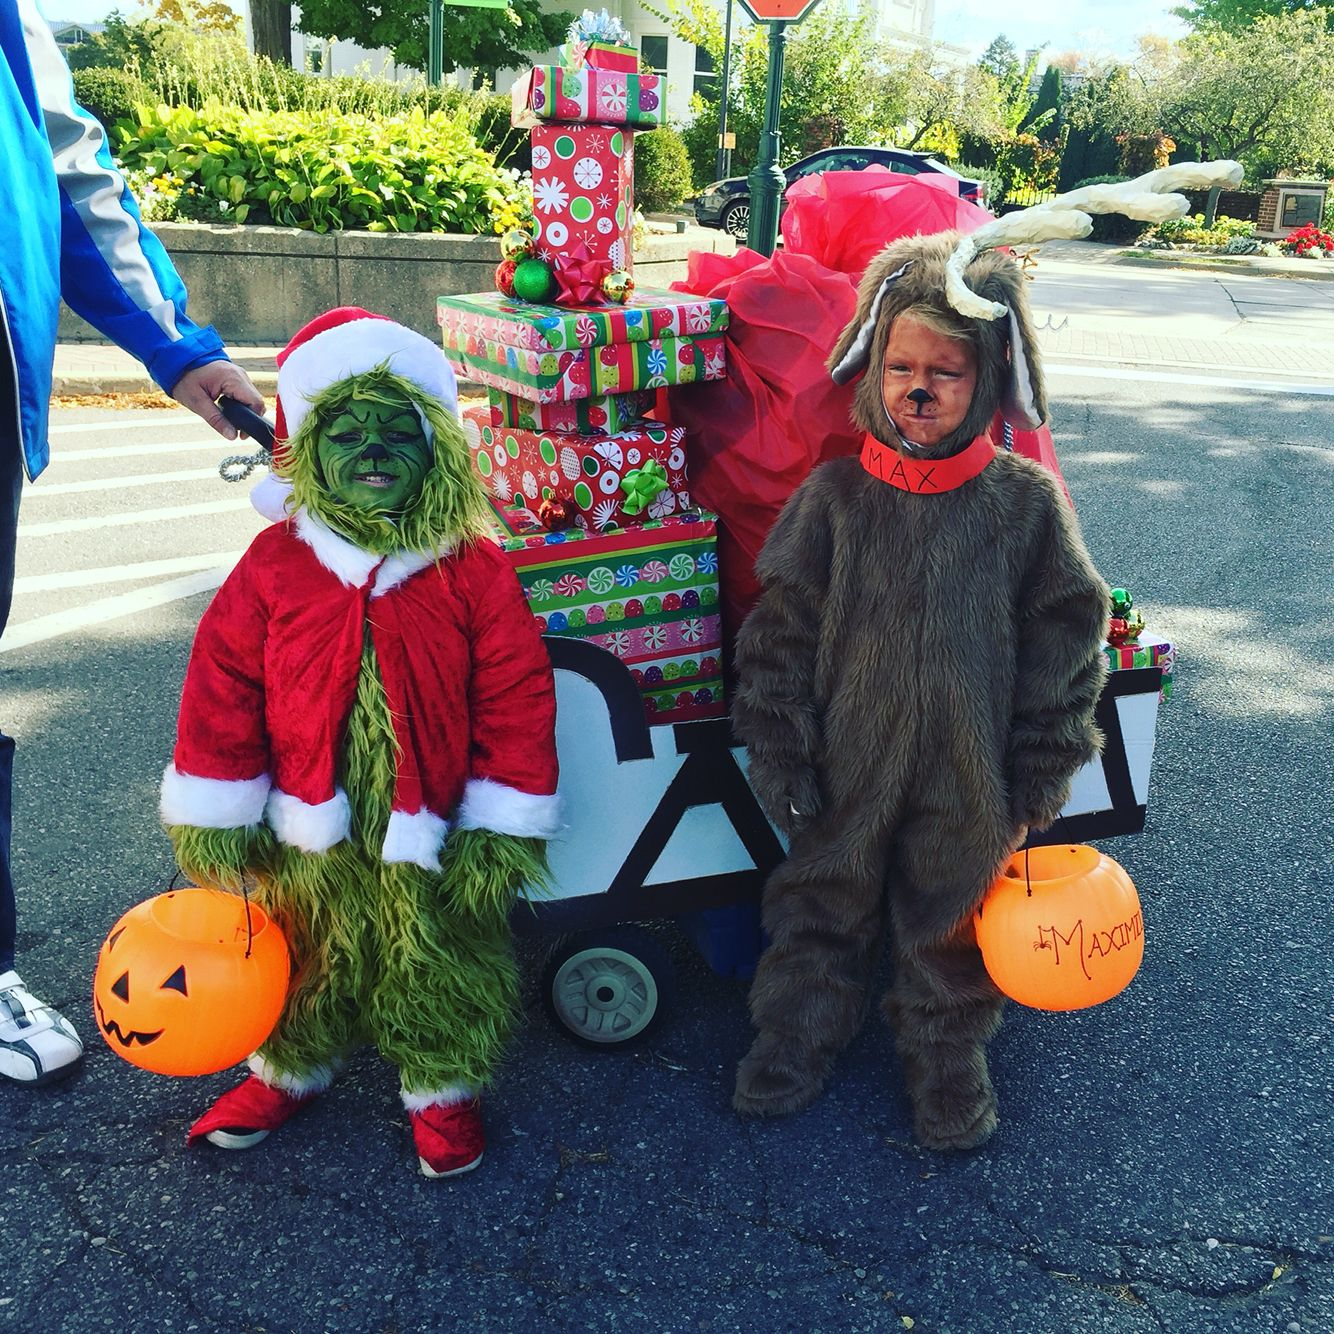 The Grinch and his dog Max, with a sleigh full of stolen